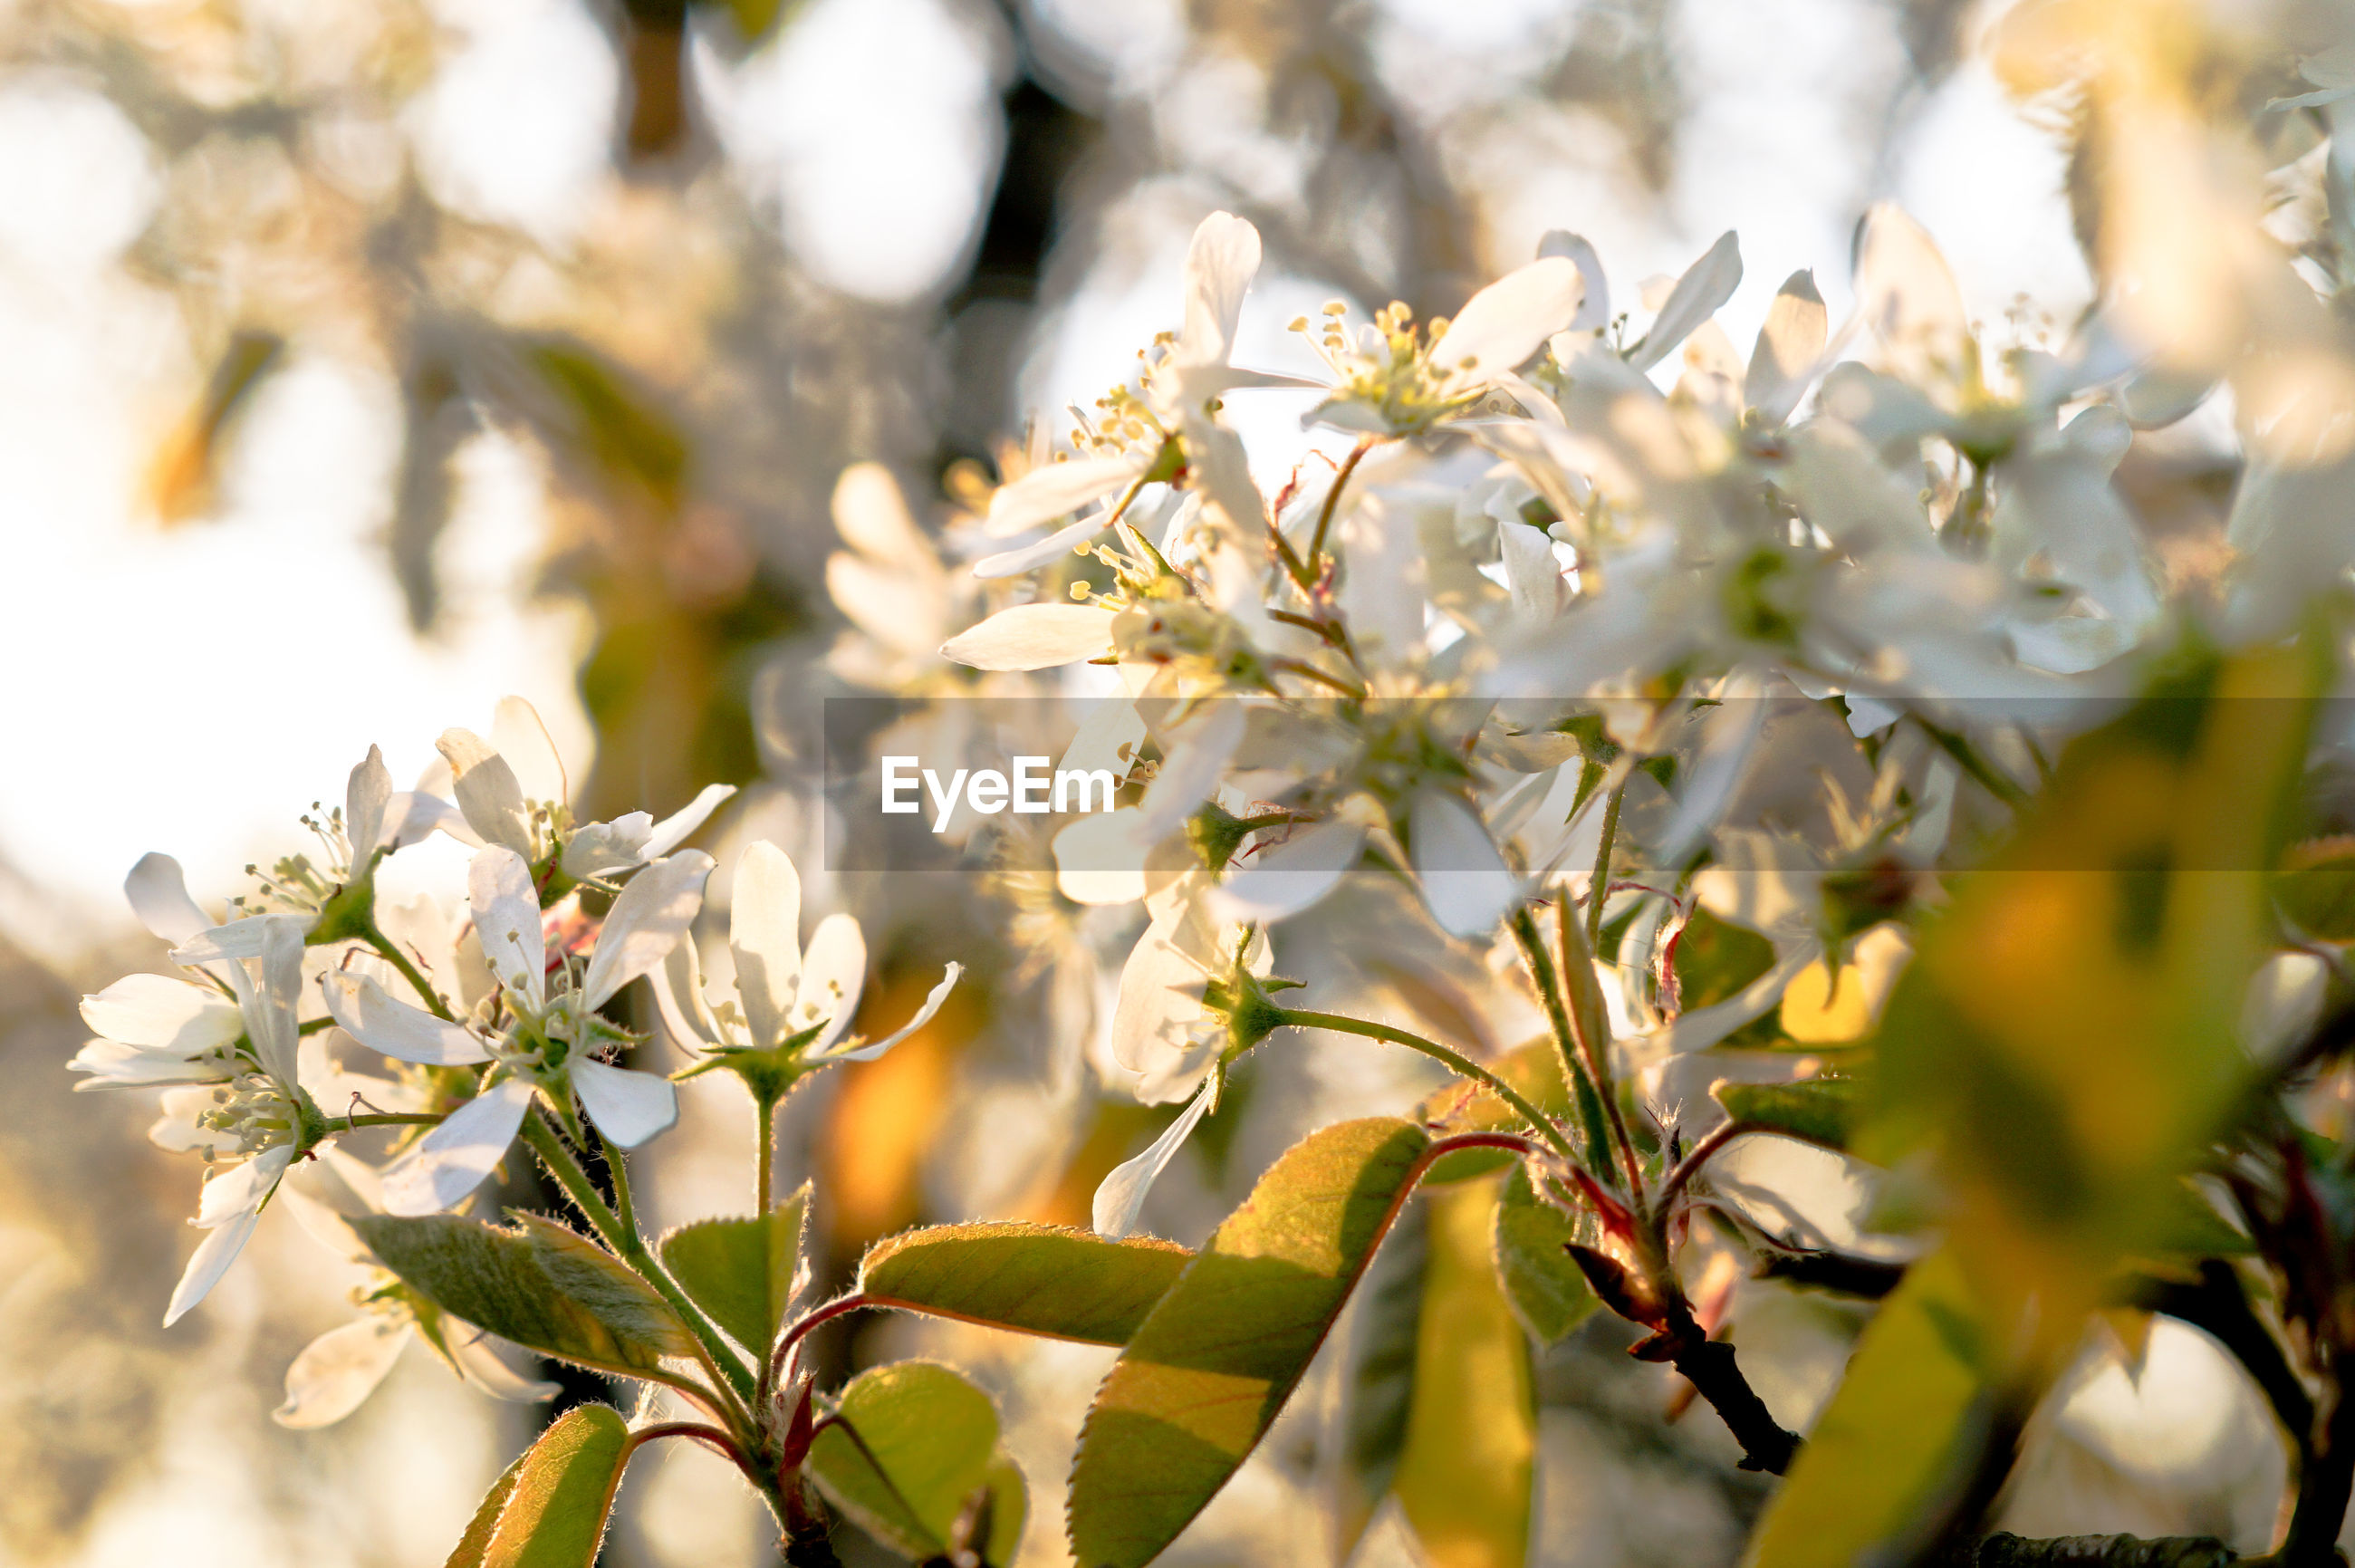 CLOSE UP OF WHITE FLOWERING PLANT